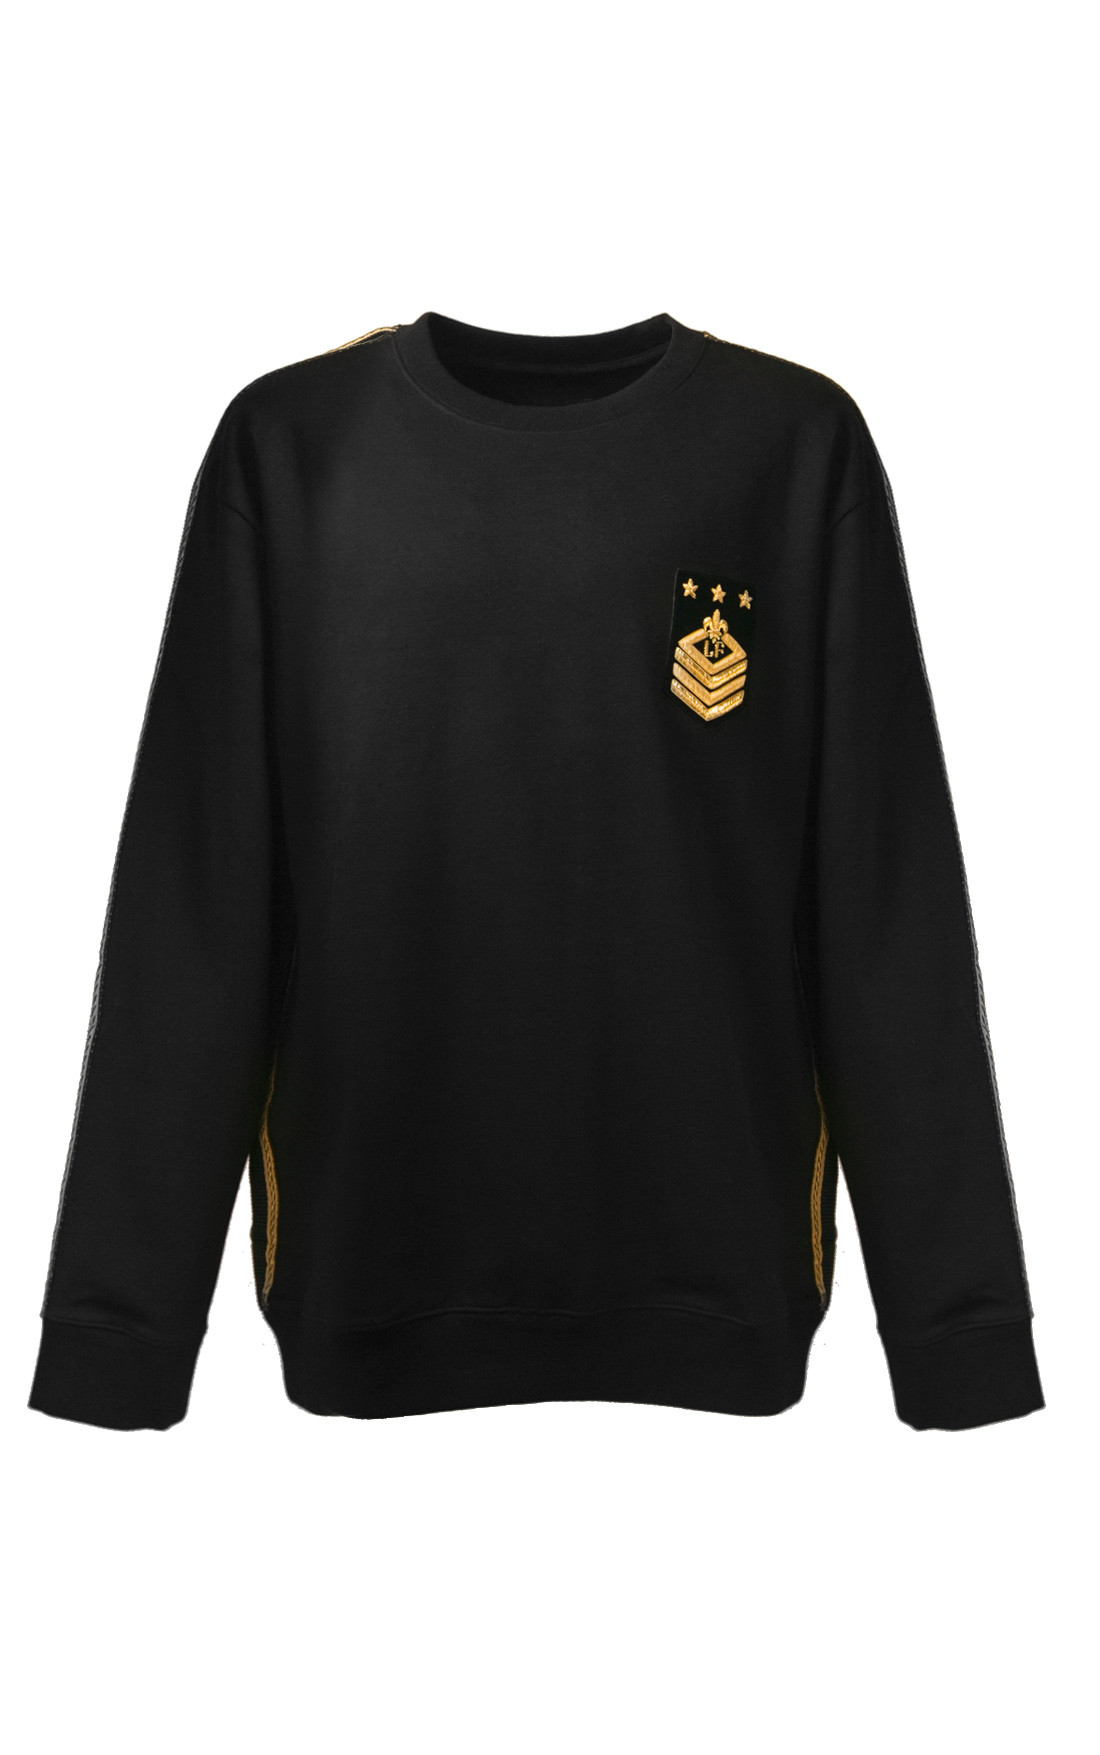 Lords and Fools - Scottish Black Sweatshirt with LF Badge (W19/SCOTTISH/BAND)